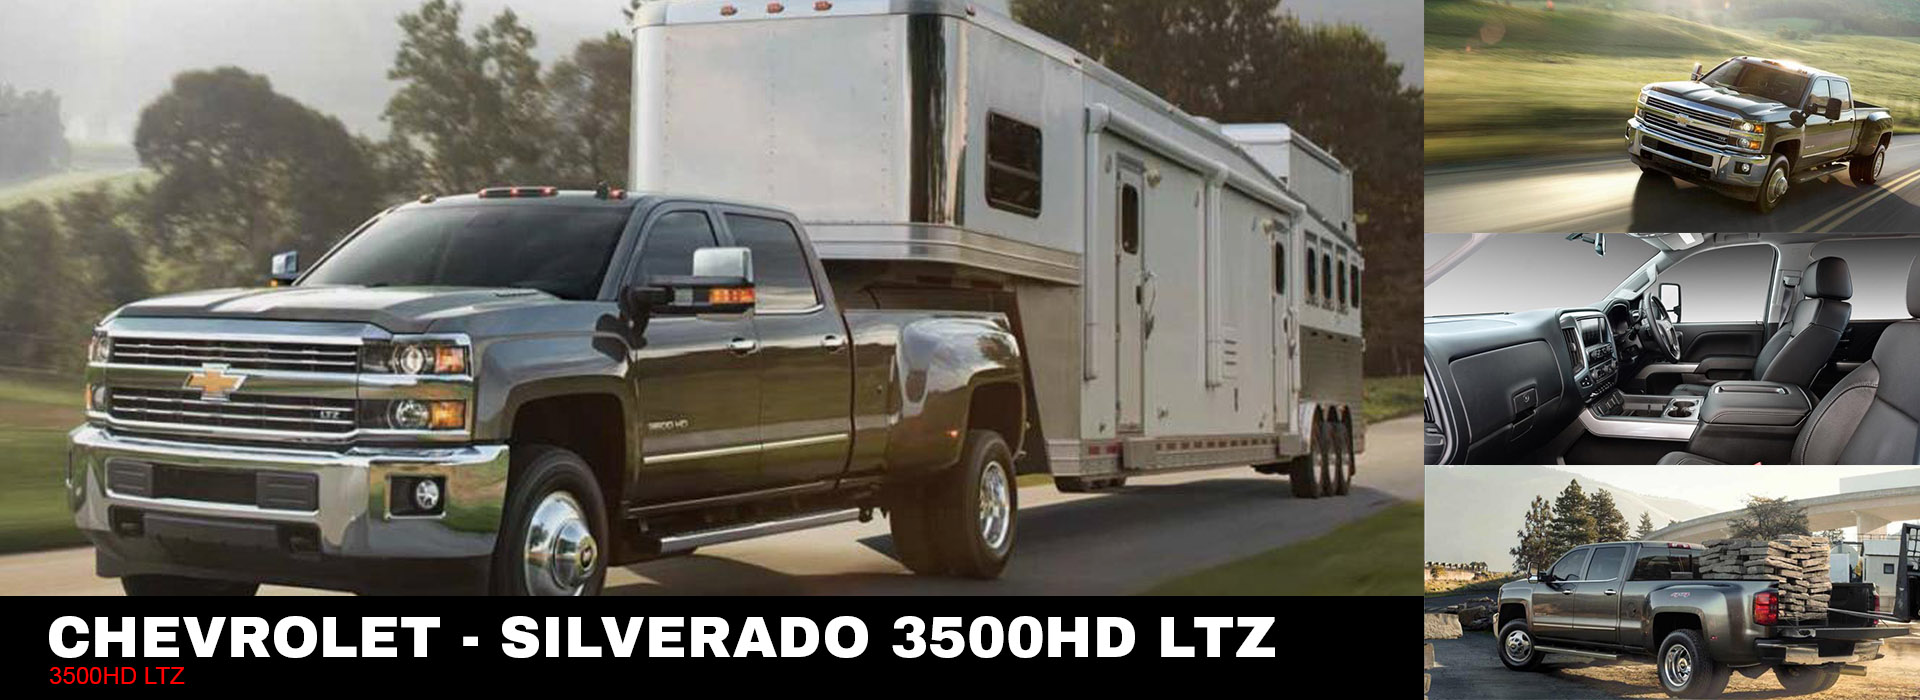 Chevrolet Silverado Trucks for sale